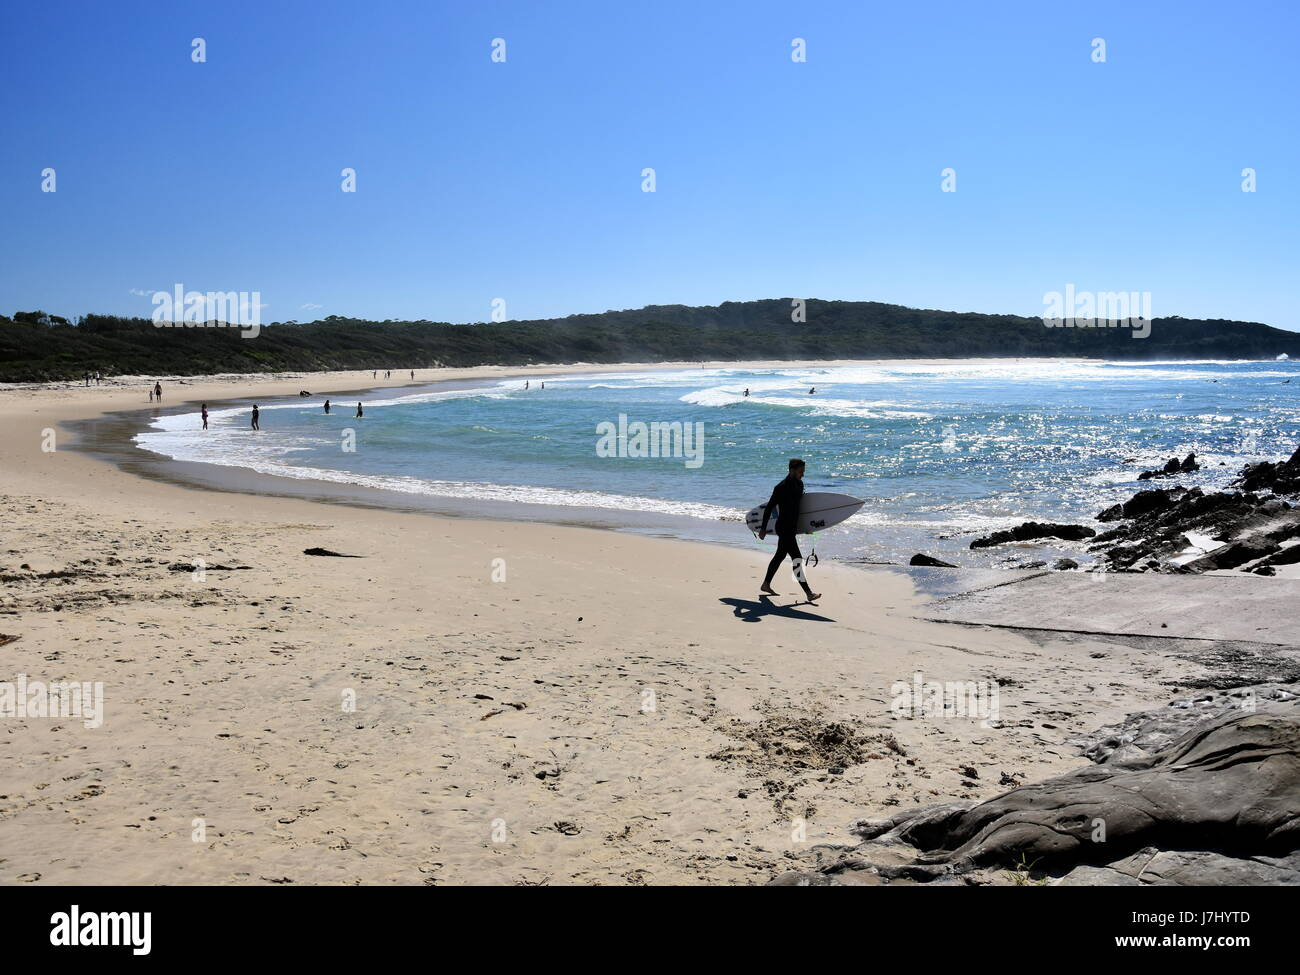 Potato Point, Australia - Apr 14, 2017. Men with surboard walking on the beach. Potato Point is a village in the - Stock Image